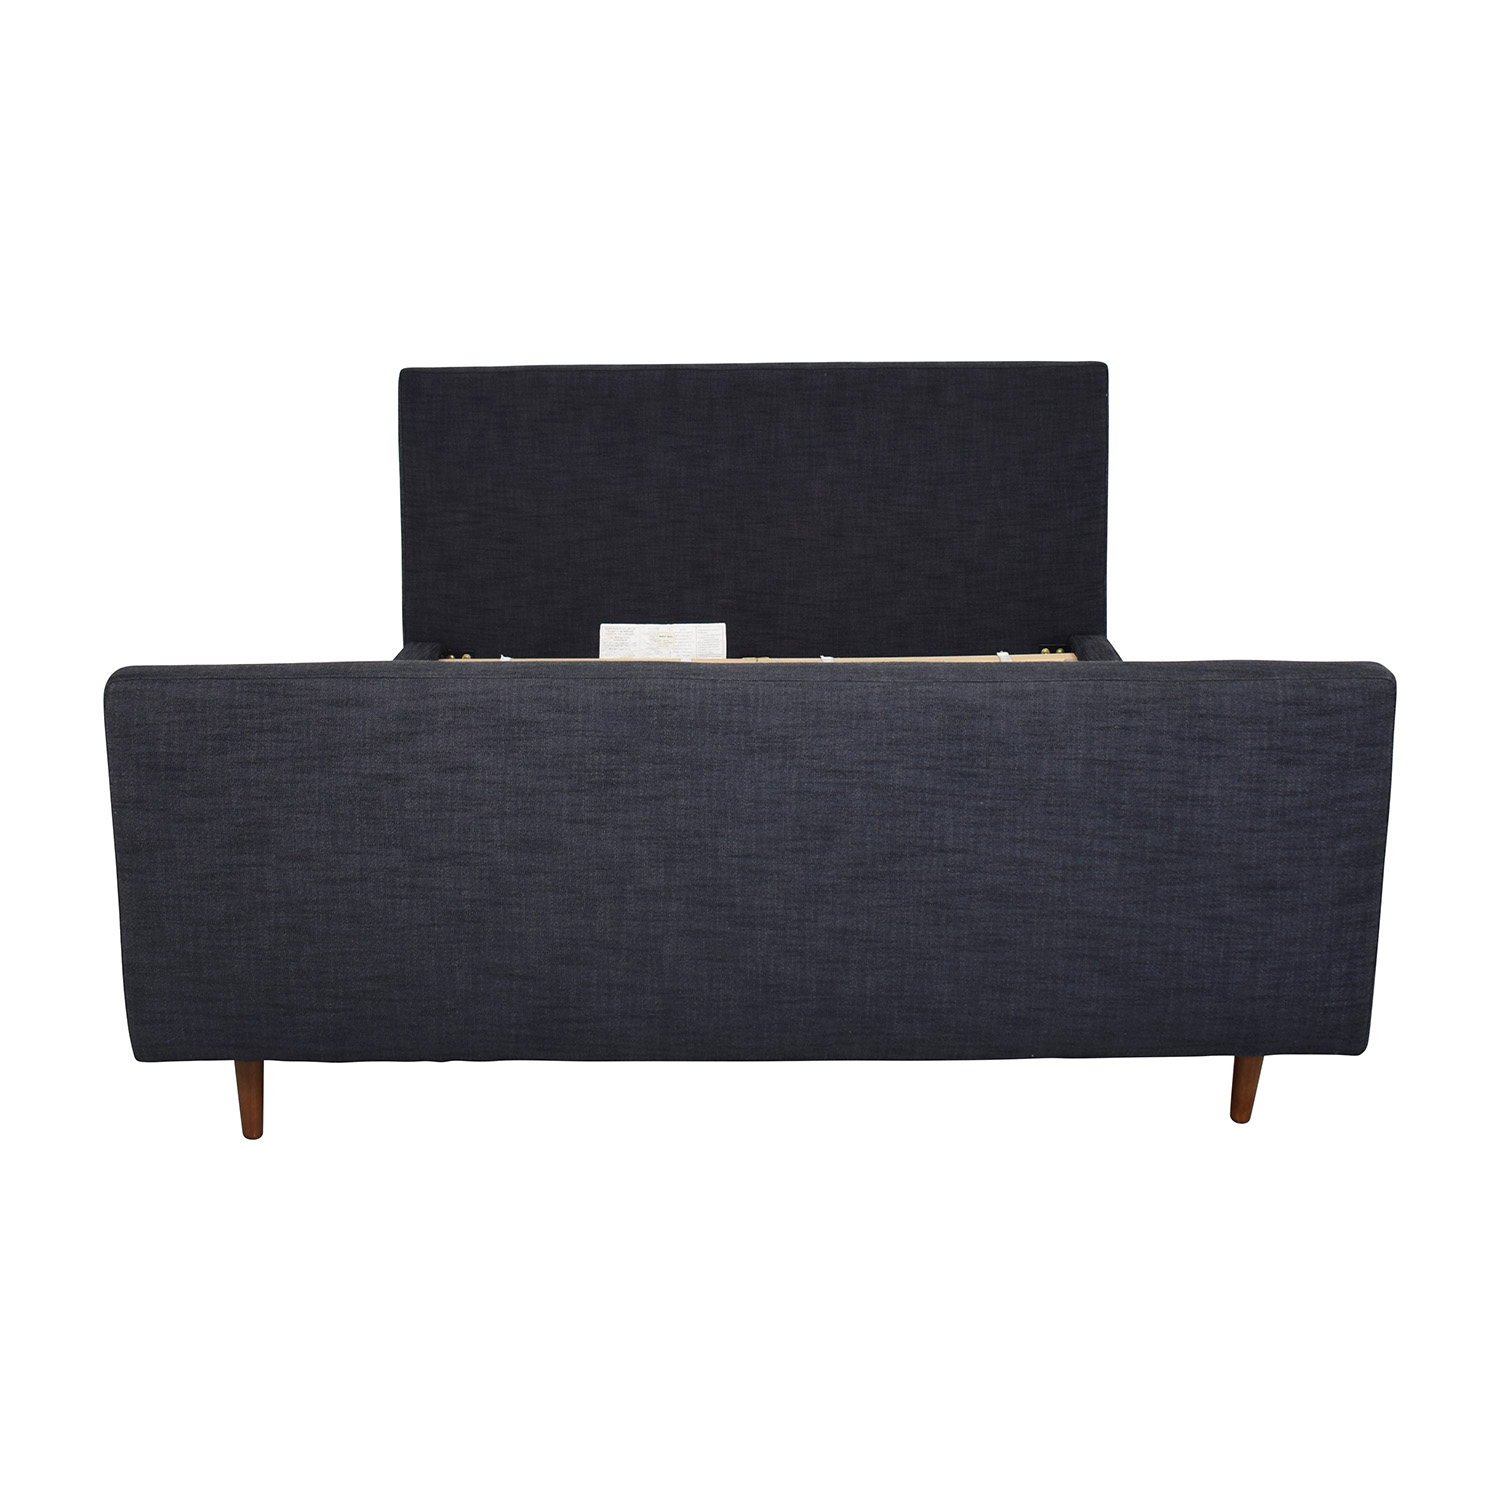 West Elm Queen Upholstered Bed with Footboard / Beds